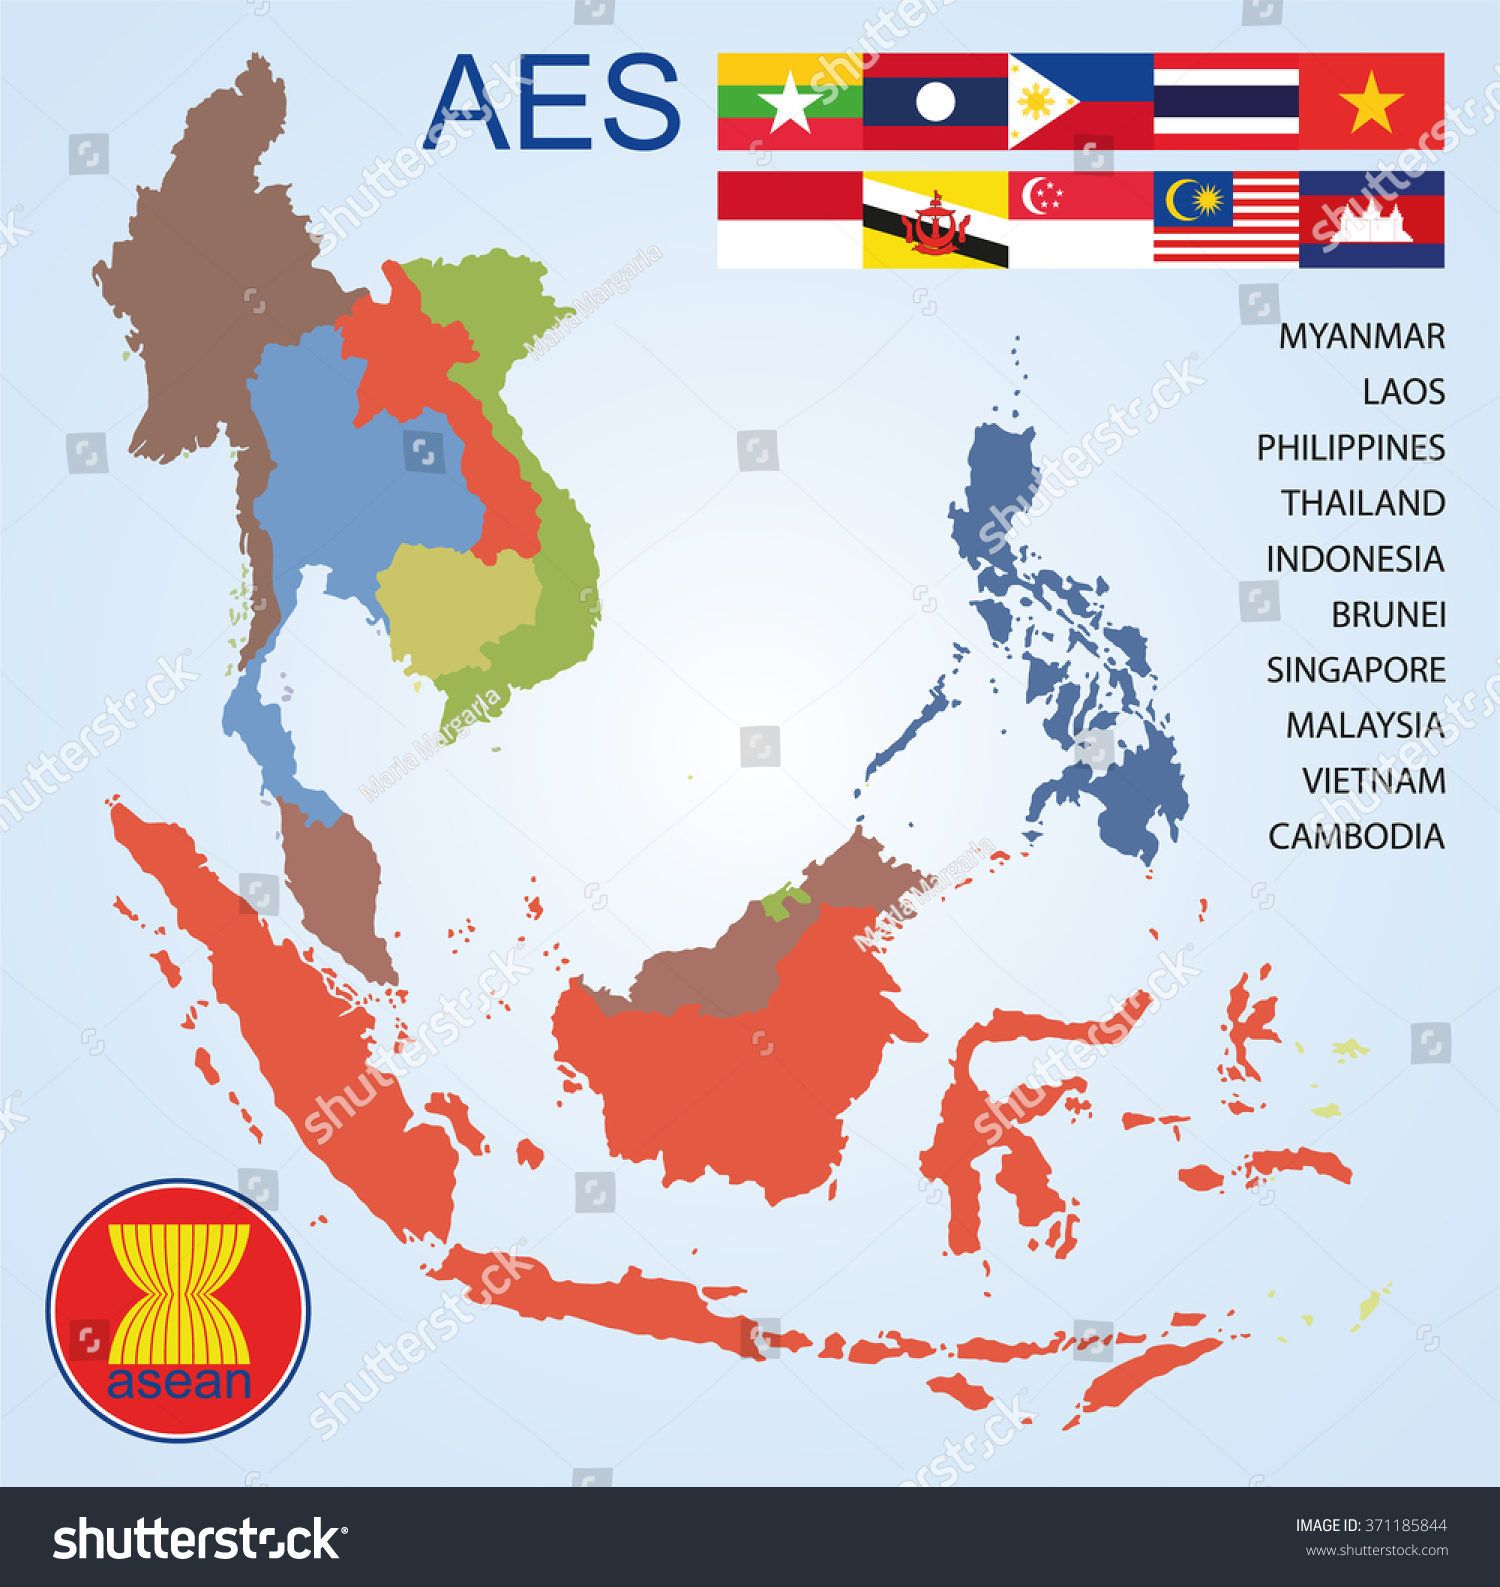 geo political and economic organization of asean essay Paper/2013/03/15/5543geopoliticaltrendssecurityaseanprcindia/ key  emerging economies—asean, the people's republic of china (prc), and india —  organization and the southeast asia treaty organization  for a  discussion of the strategic implications of us rebalancing to asia, see a series of  essays in the.